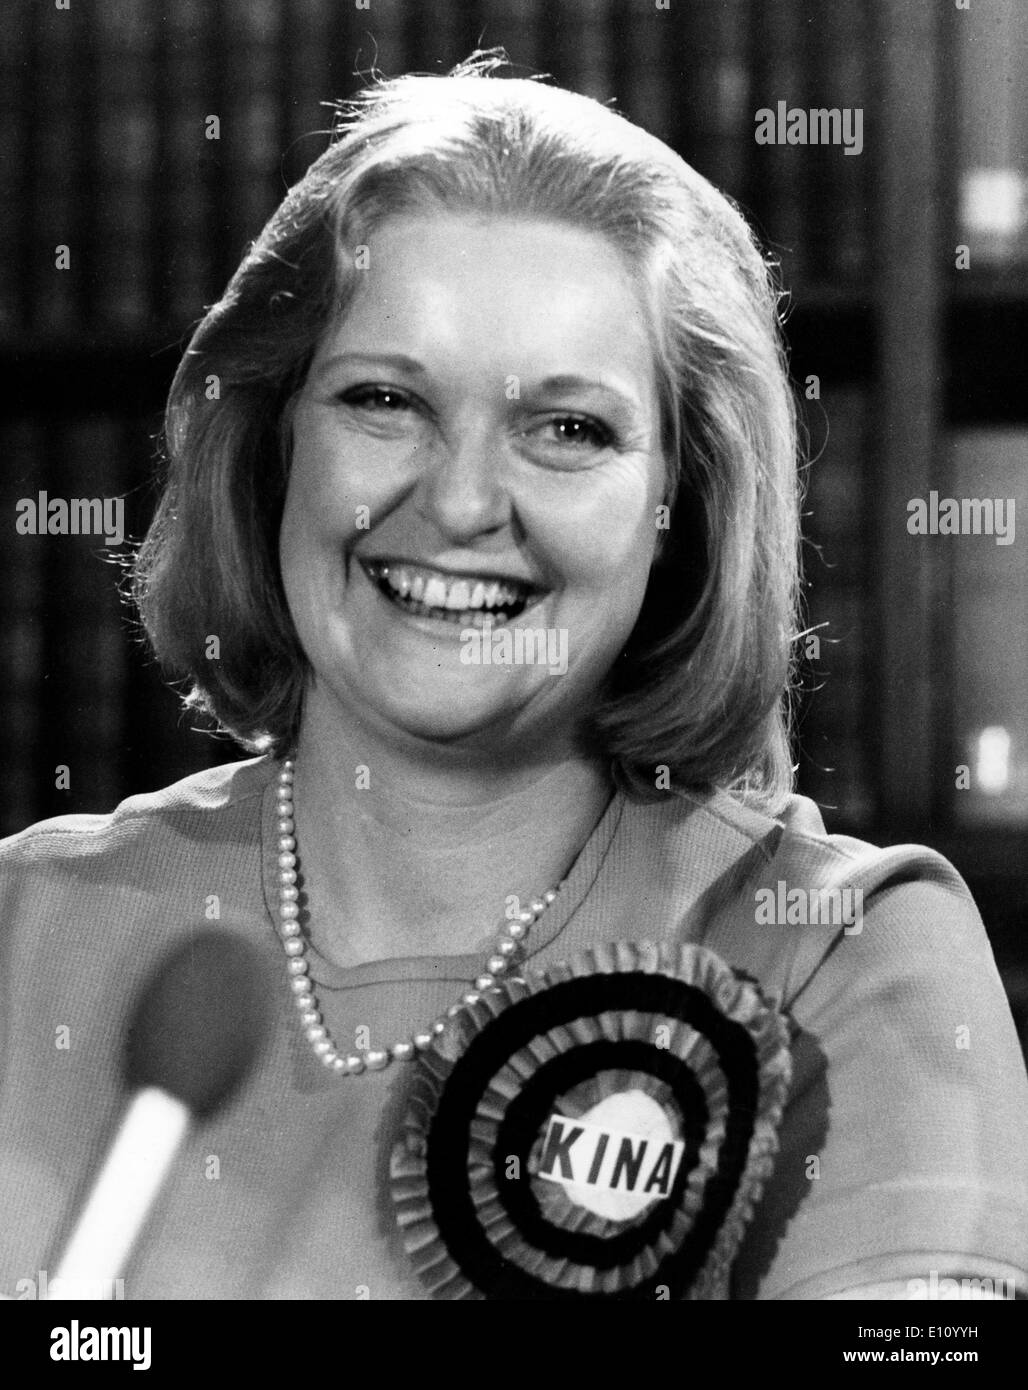 Lady KINA AVEBURY, wife of Lord Avebury, at Liberal Party press conference in London - Stock Image